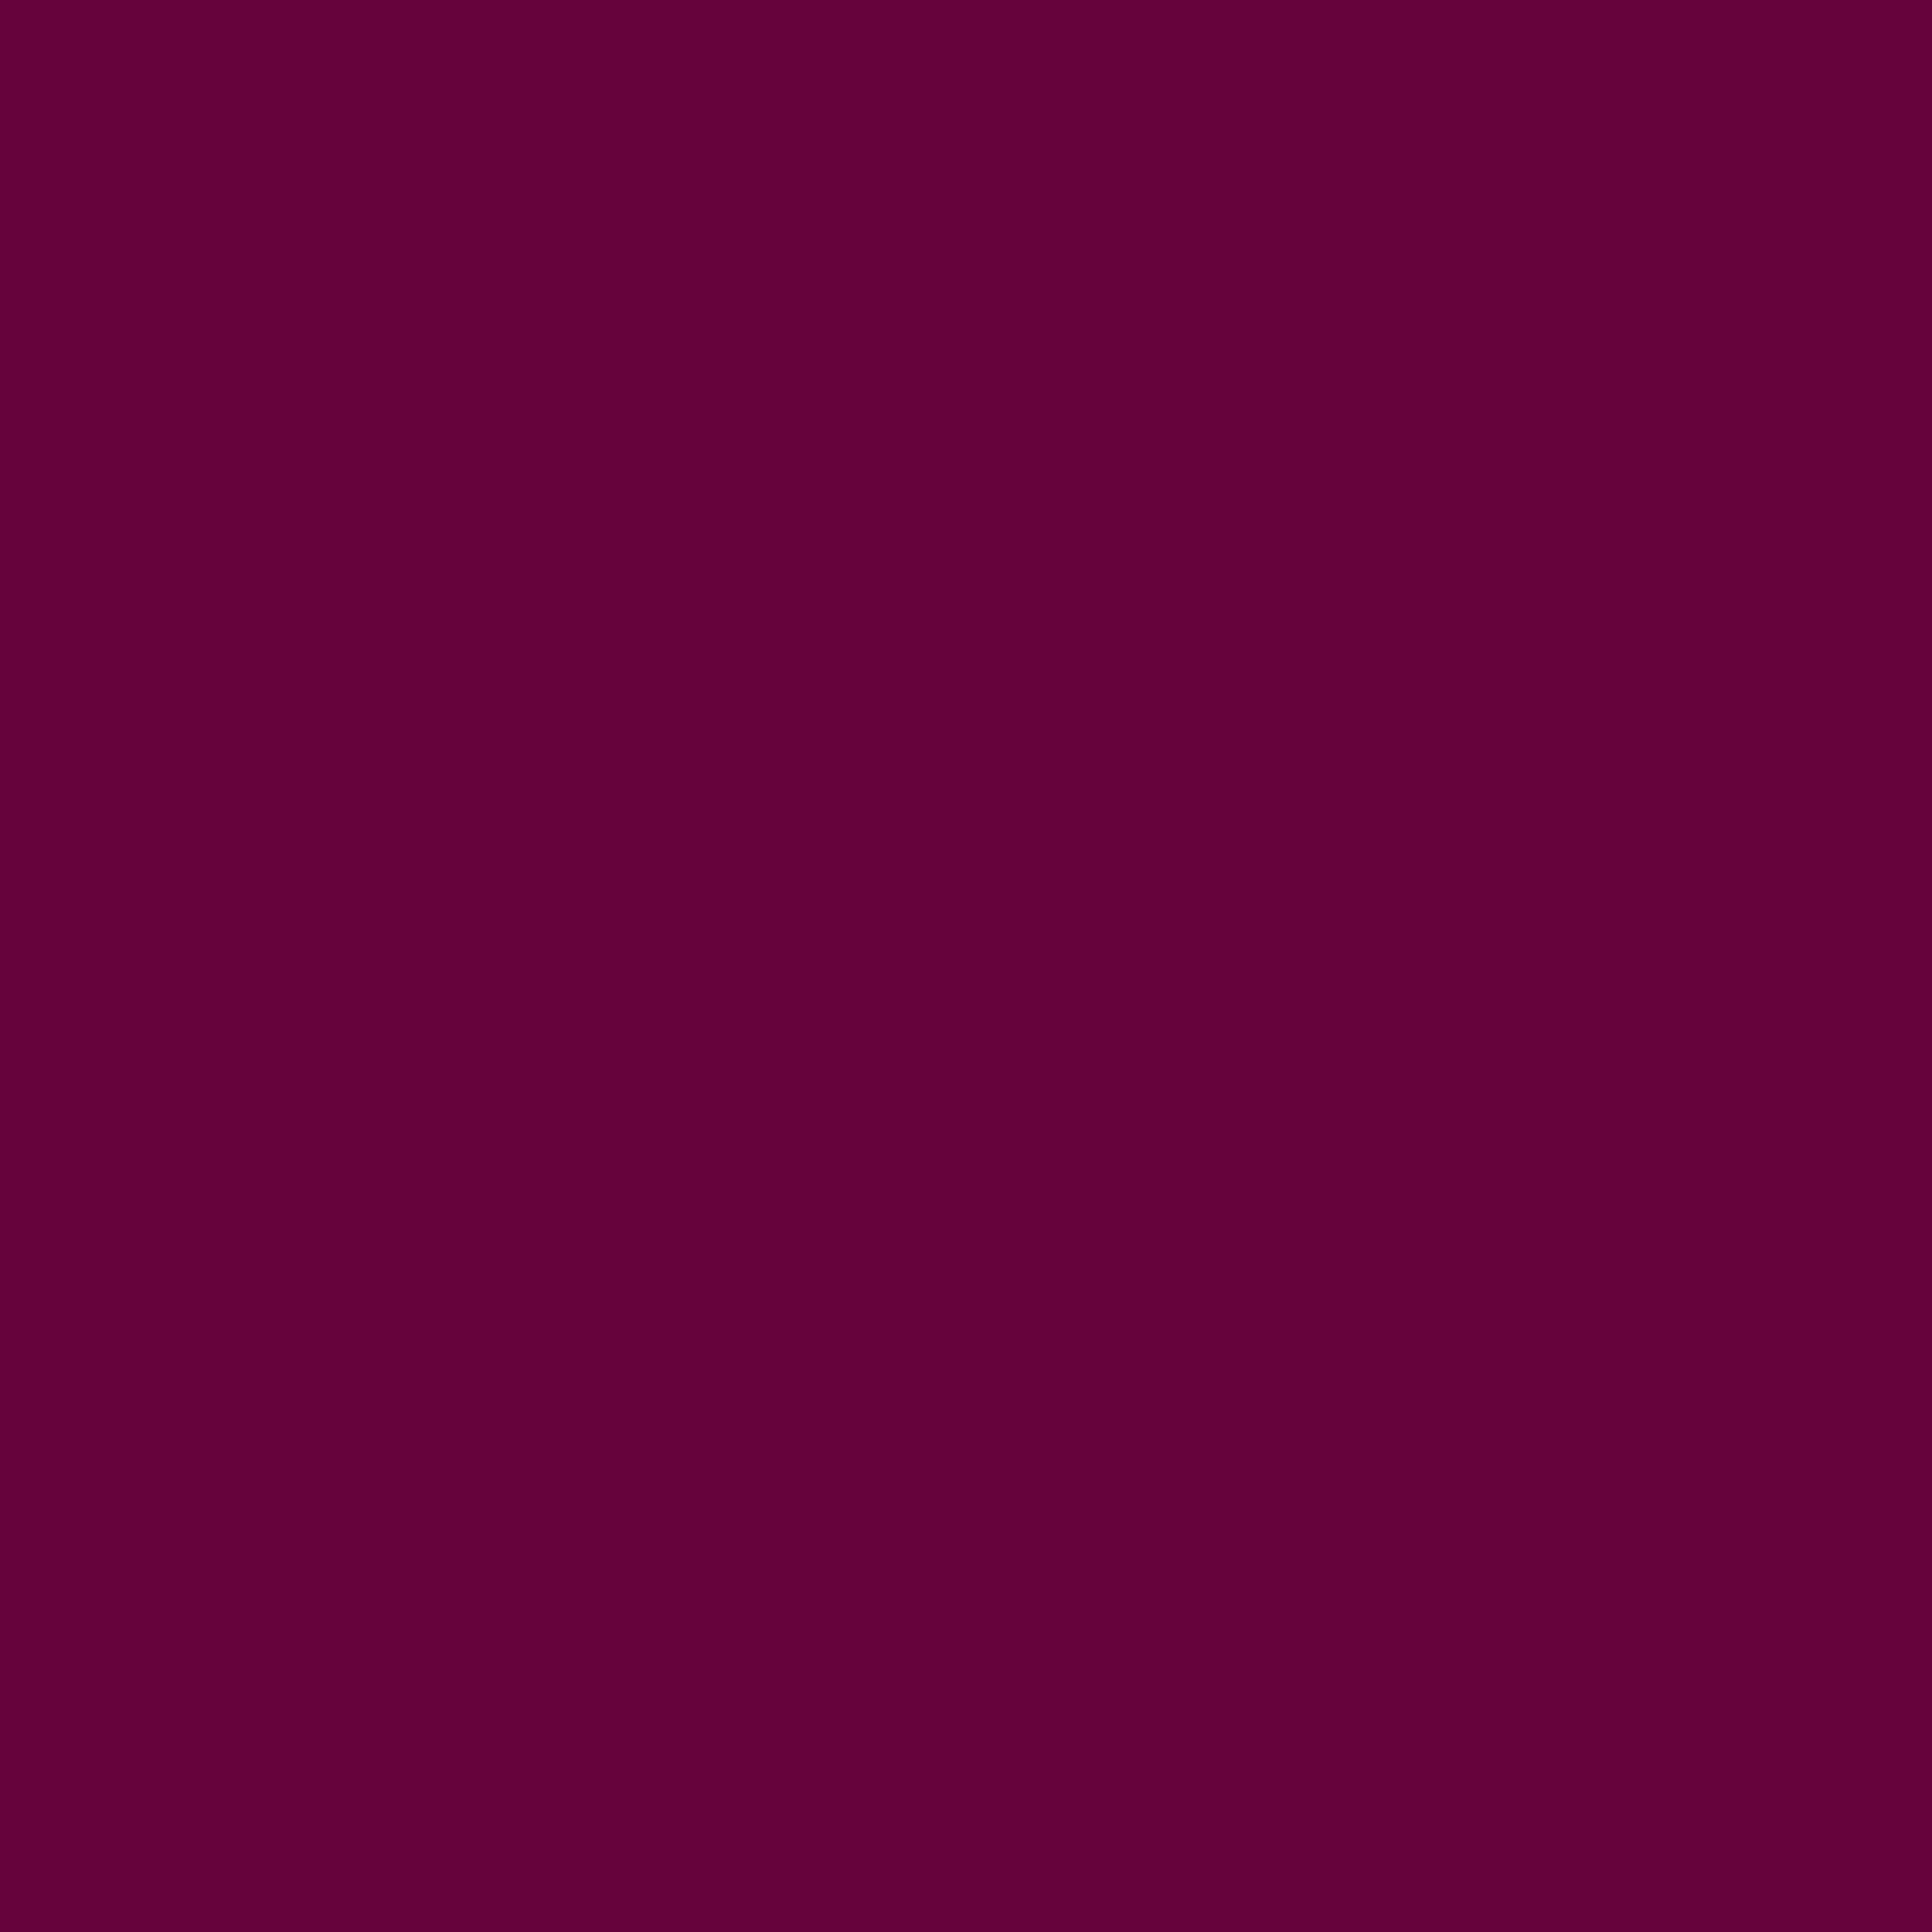 2048x2048 Imperial Purple Solid Color Background